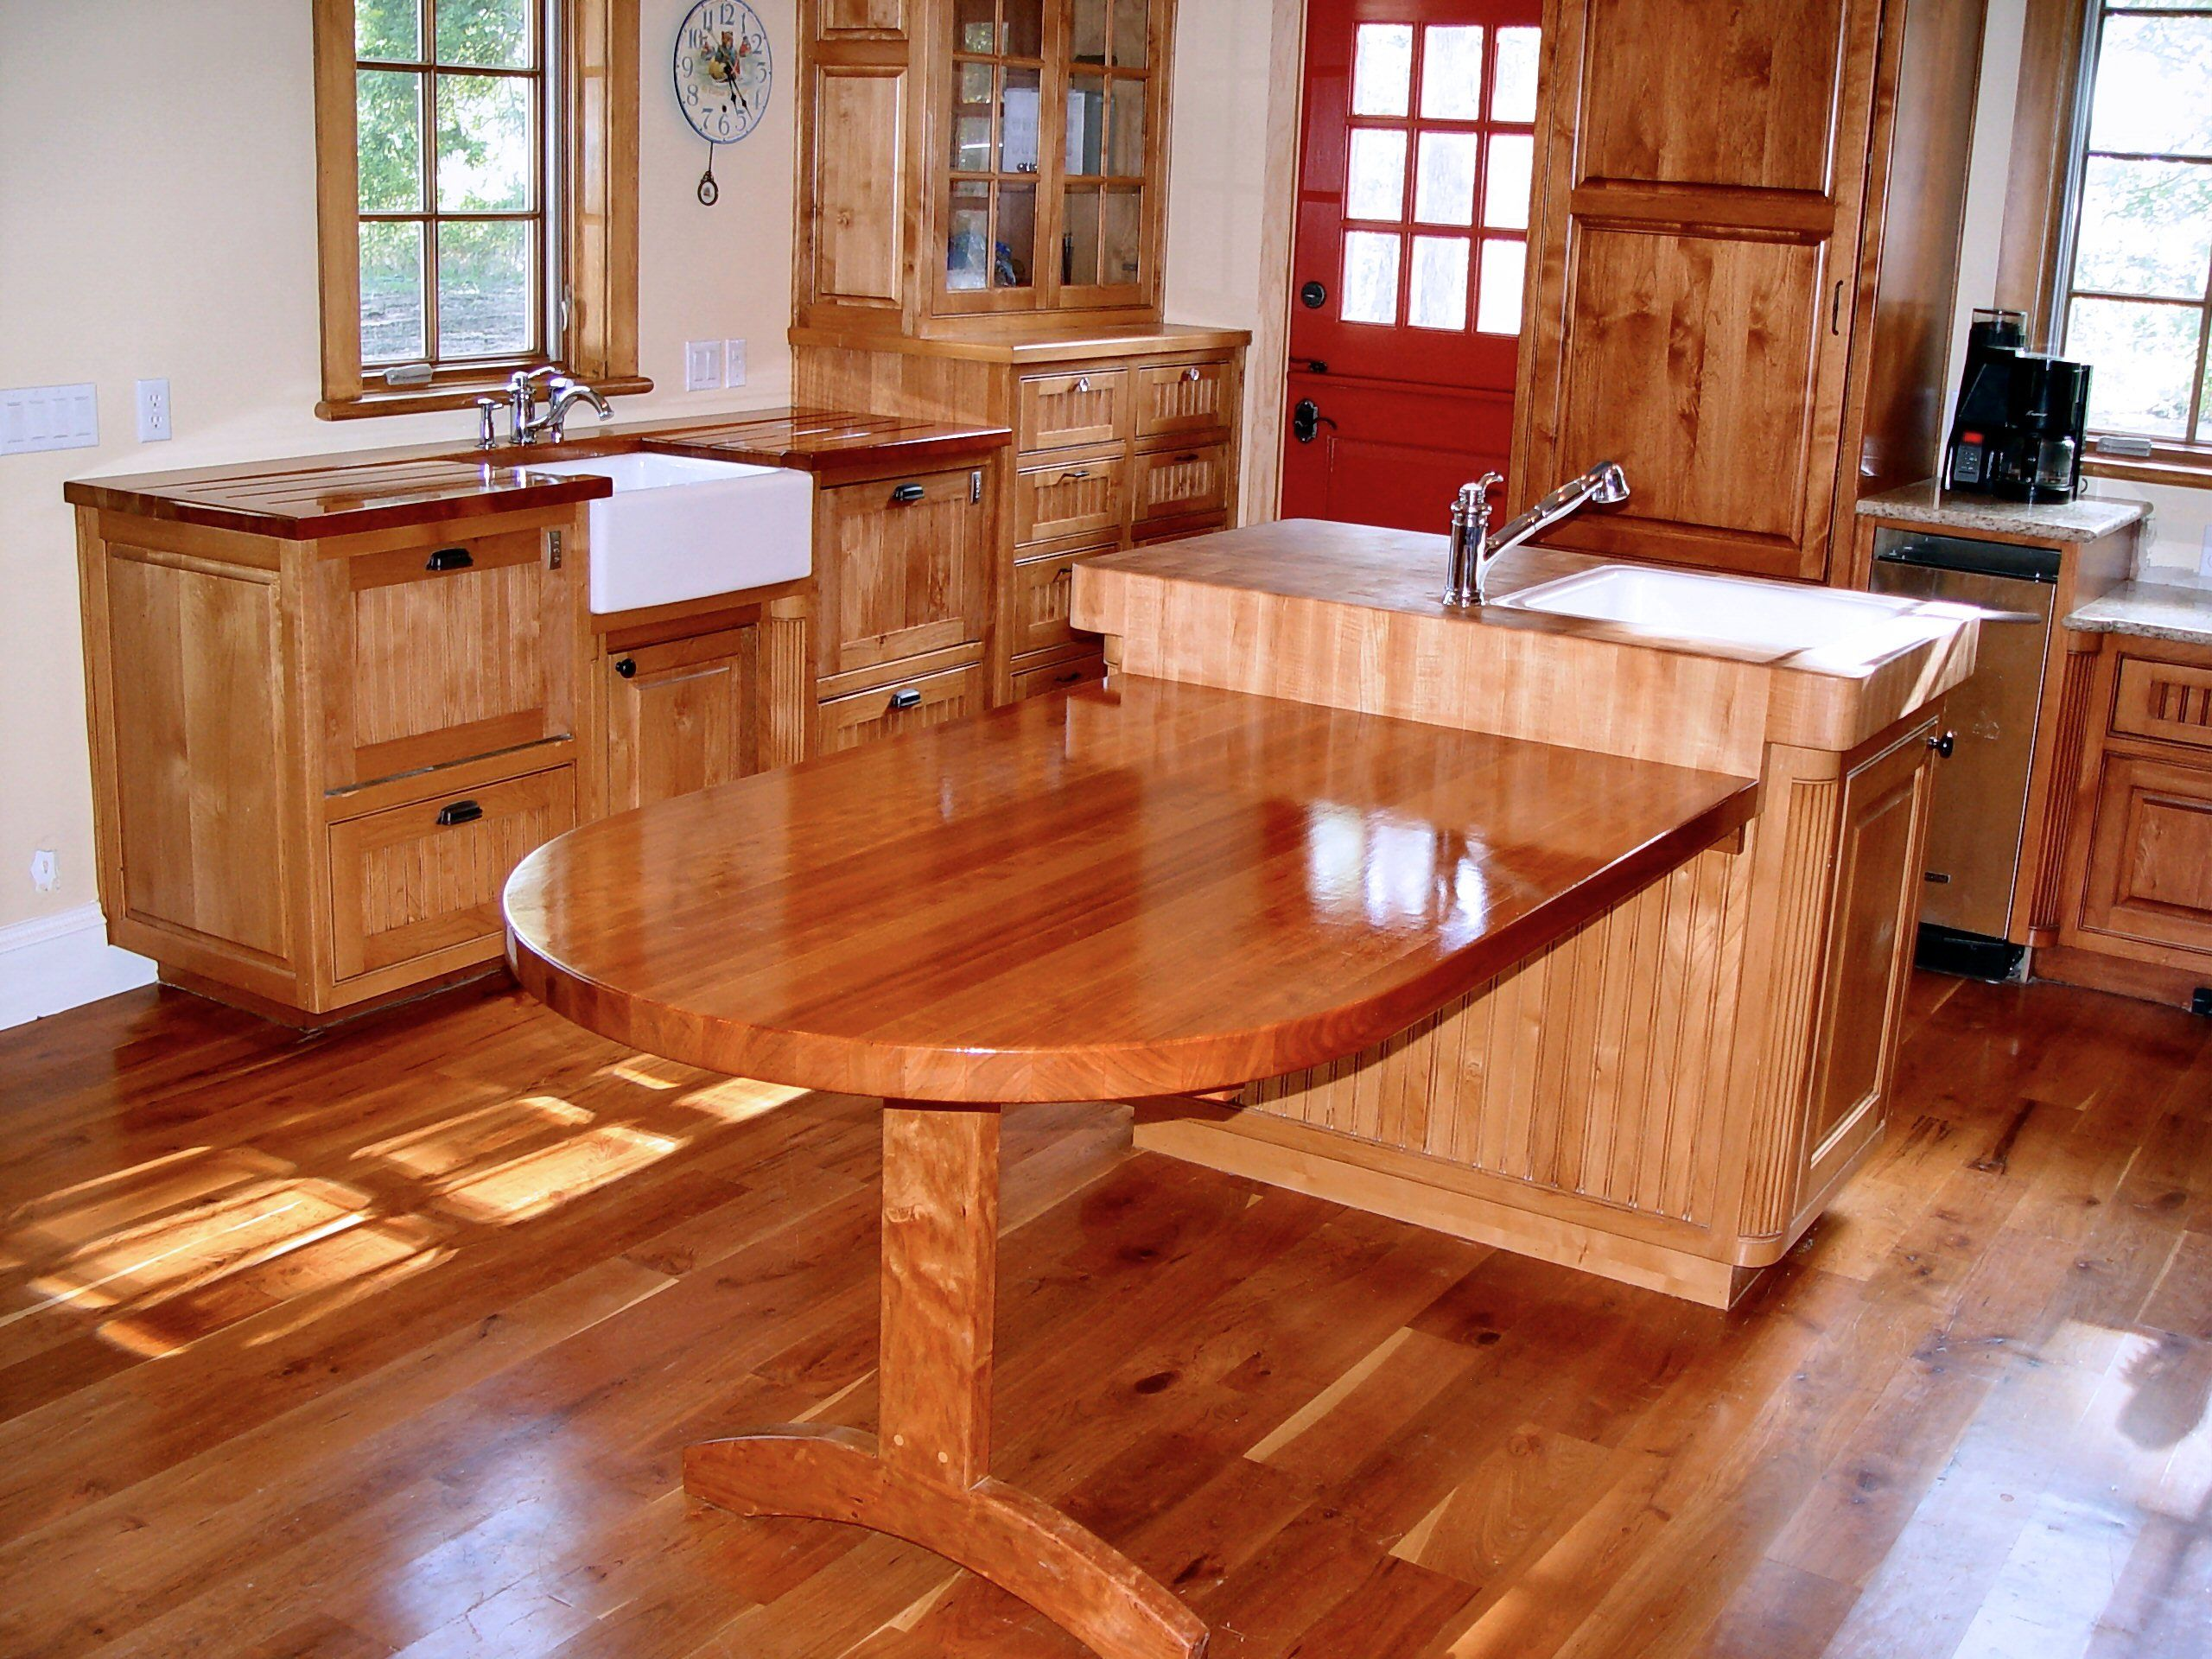 Cherry edge grain custom wood table top. Cherry Wood Countertop Photo Gallery  by DeVos Custom Woodworking